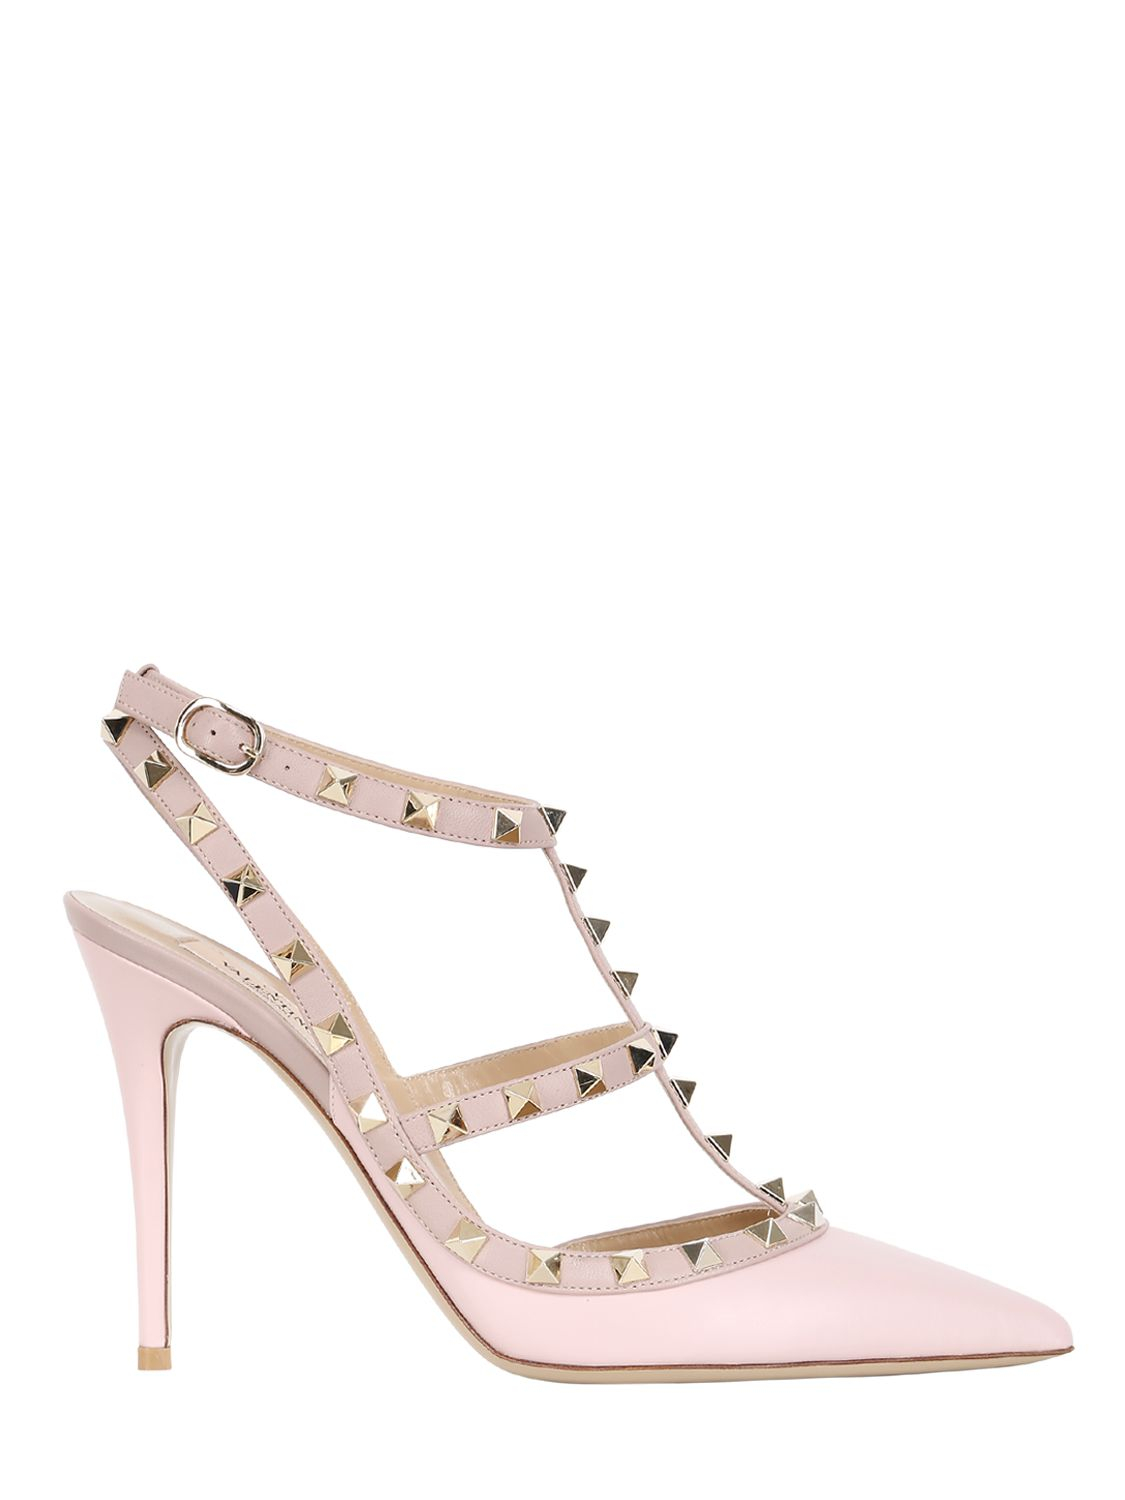 ec6ae7a9a5c Valentino 100mm Rockstud Leather Pumps in Pink - Lyst